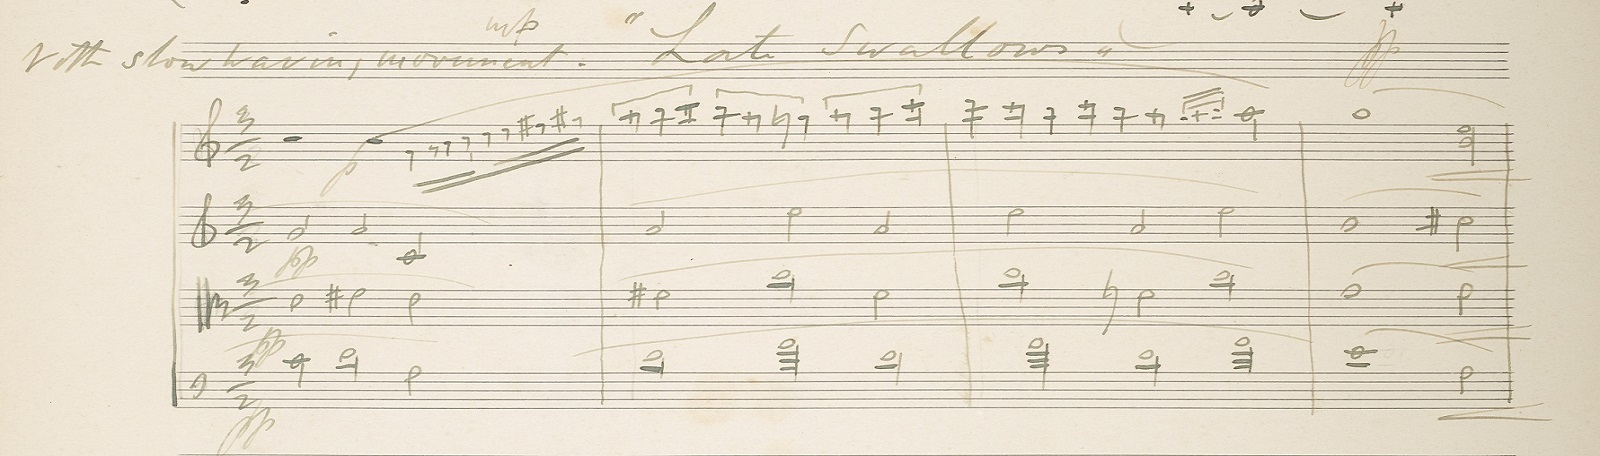 Frederick Delius, 'Late Swallows', f. 146v